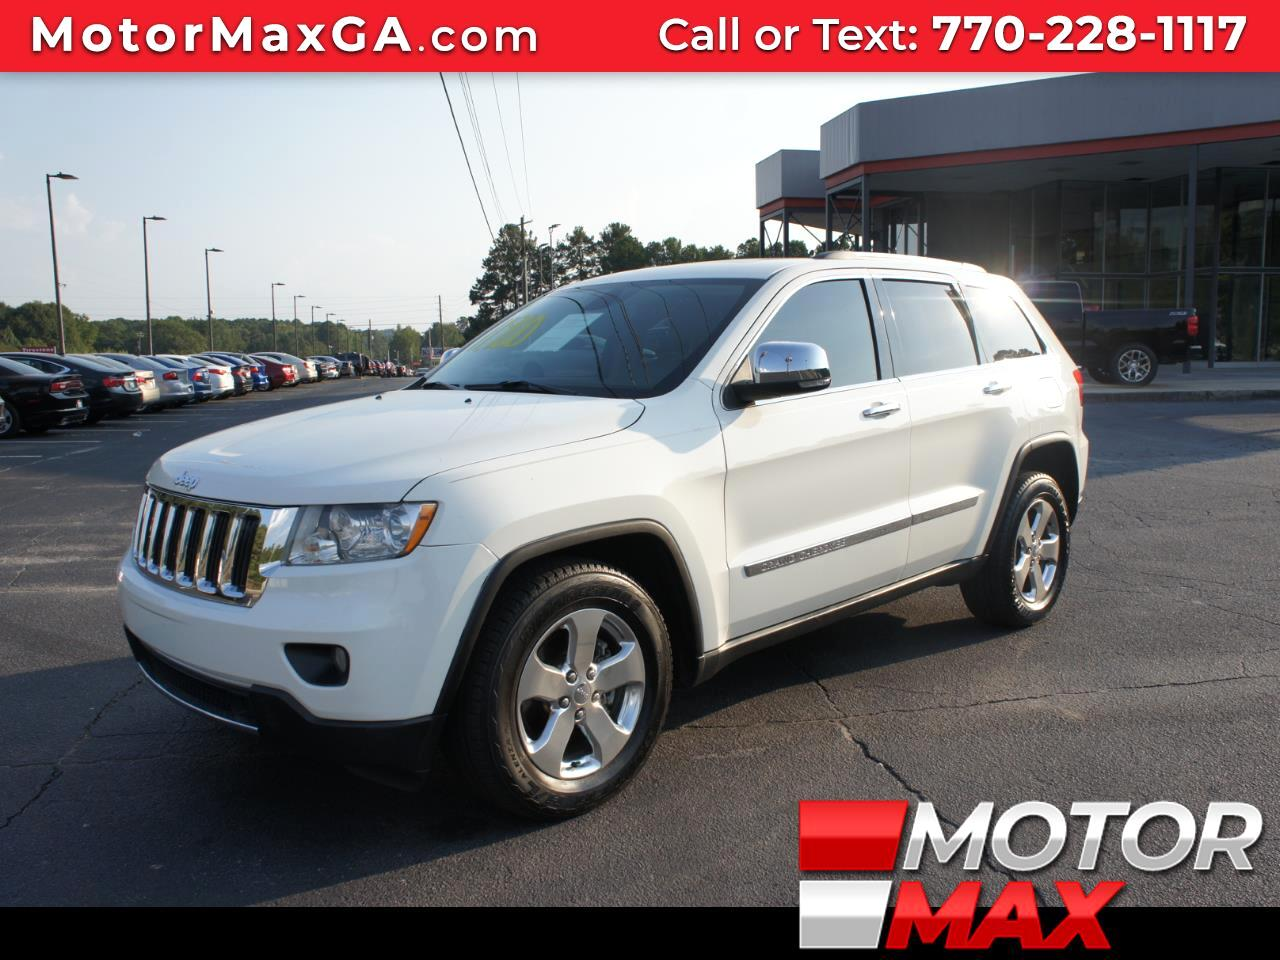 2011 Jeep Grand Cherokee 2WD 4dr Limited